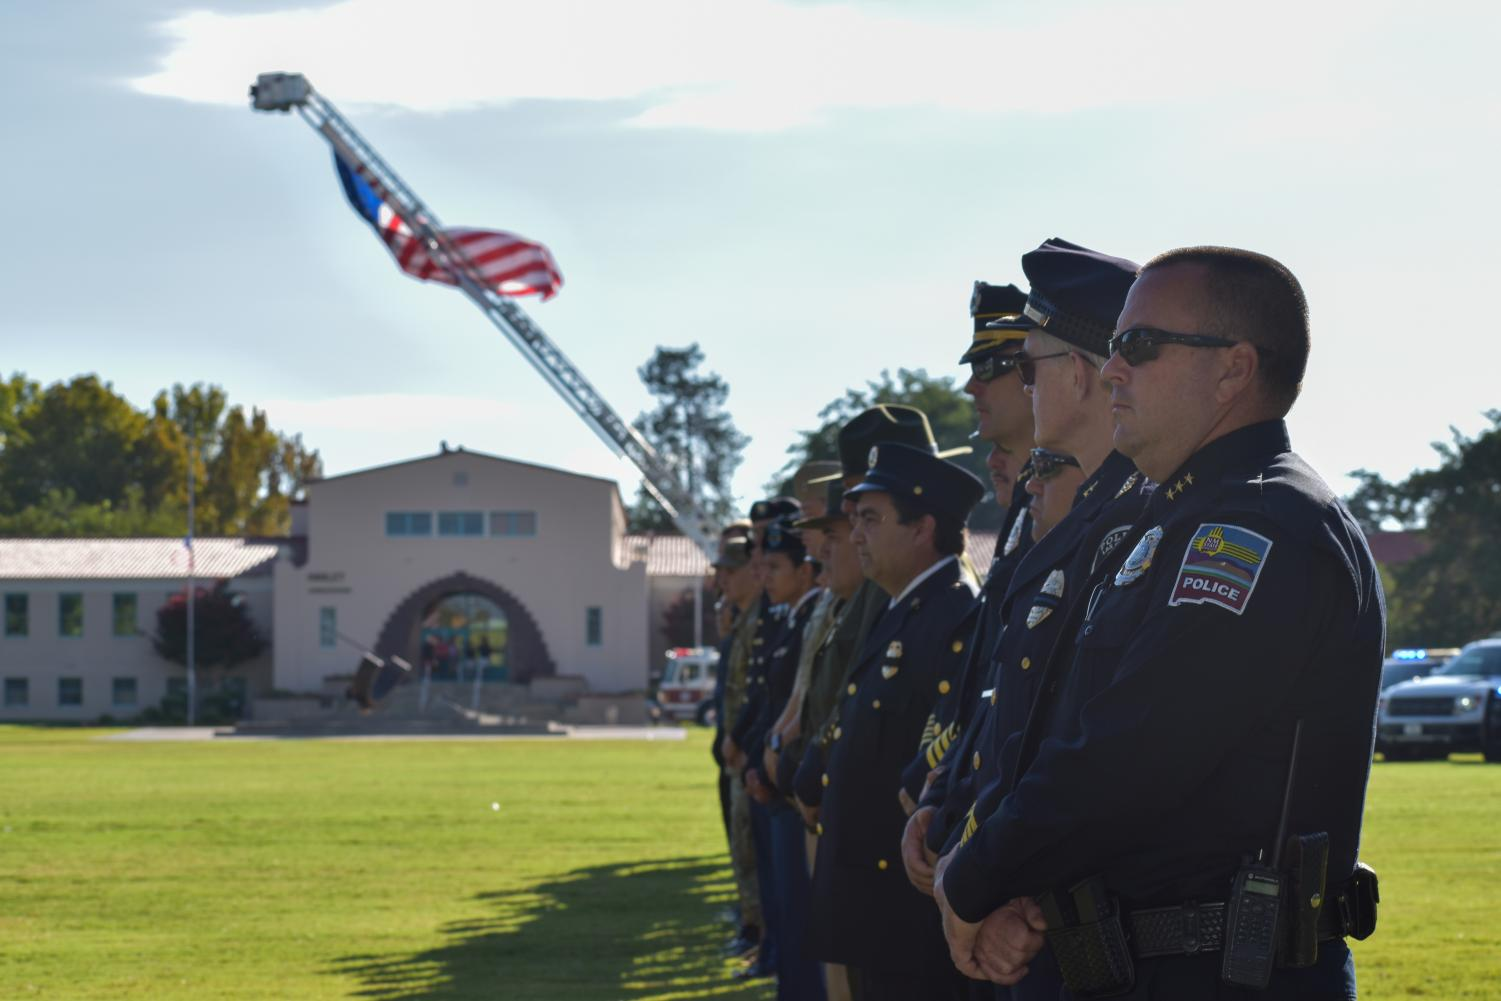 The students of NMSU ROTC stood alongside the NMSU Patriot Day to remember 9/11.